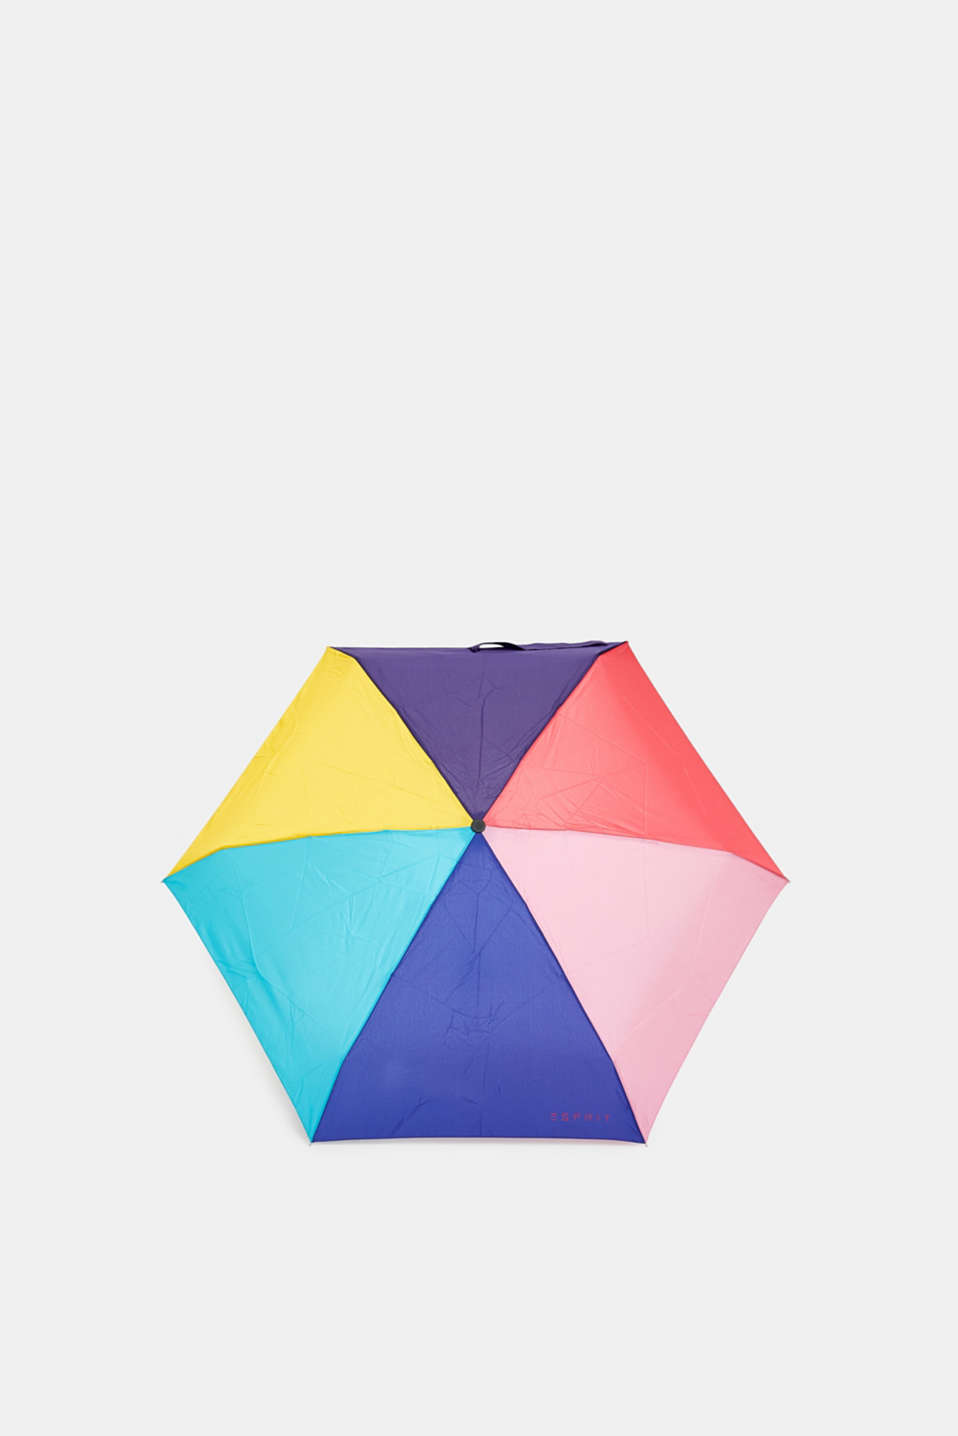 Esprit - Mini umbrella with bright colour block patterns